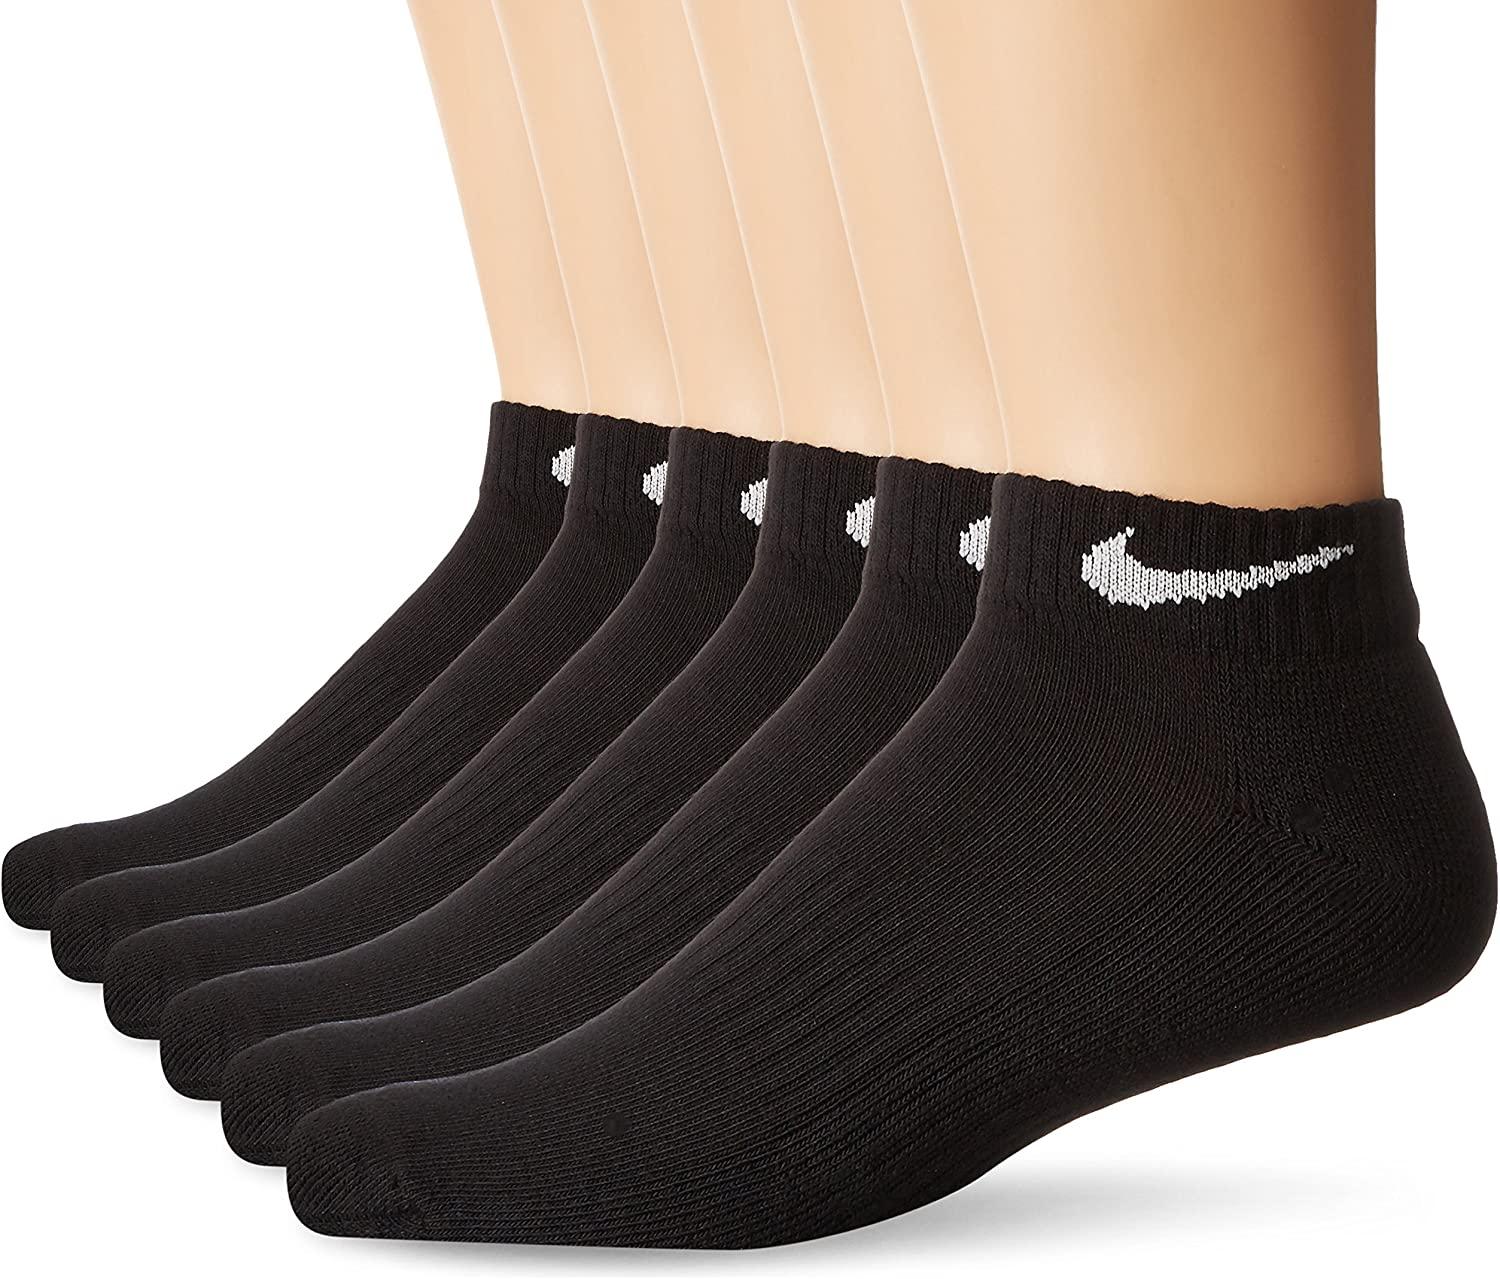 NIKE Performance Cushion Low Rise Socks with Bag (6 Pairs)